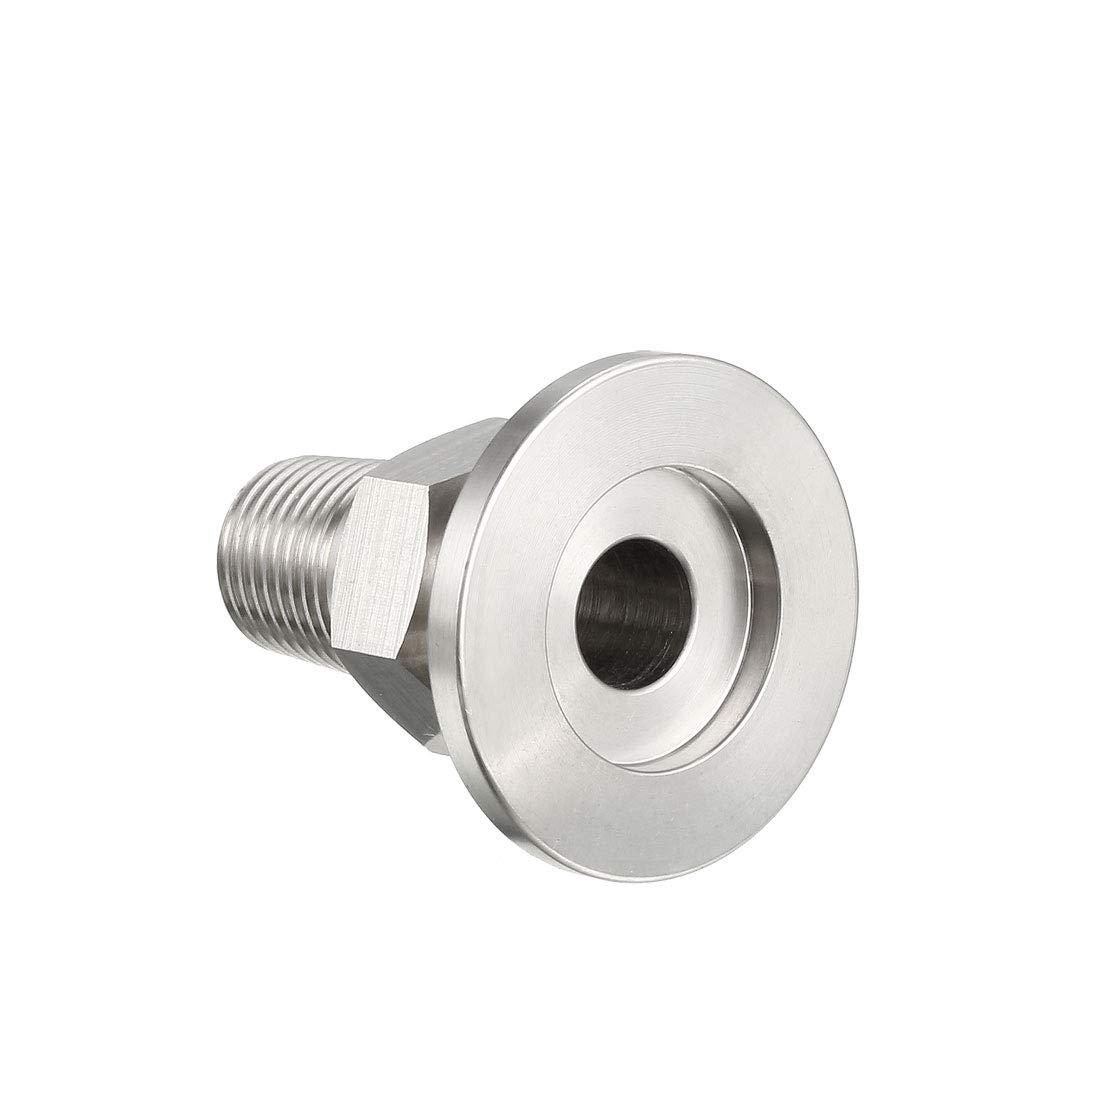 uxcell Sanitary Pipe Fitting KF16 Male Threaded 1//4 PT to Tri Clamp OD 30mm Ferrule 2 Pcs